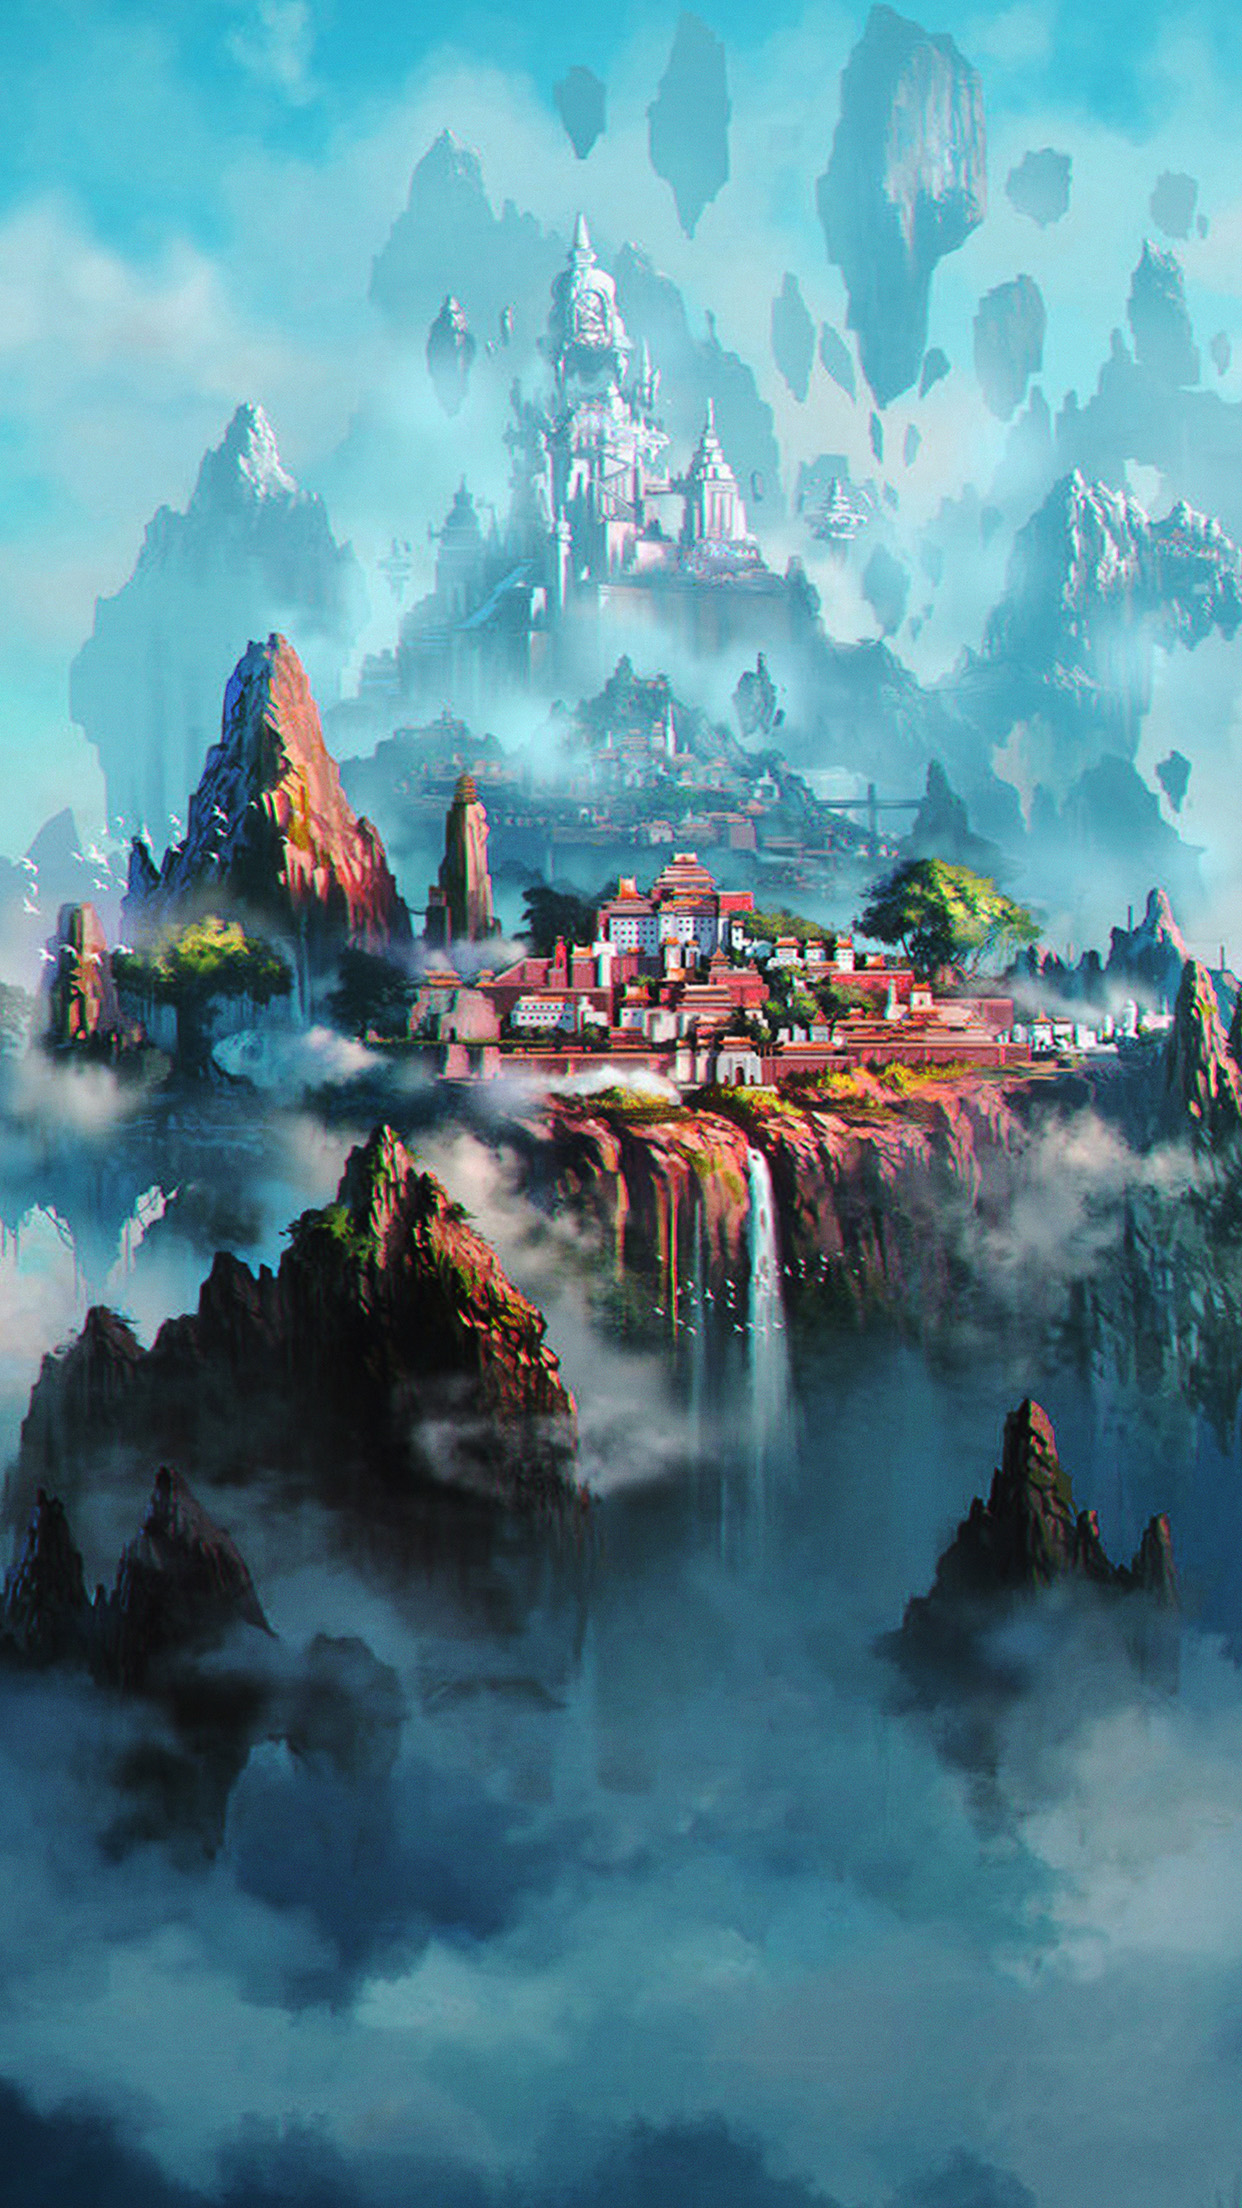 Papers Co Iphone Wallpaper Av36 Cloud Town Fantasy Anime Liang Xing Illustration Art Green